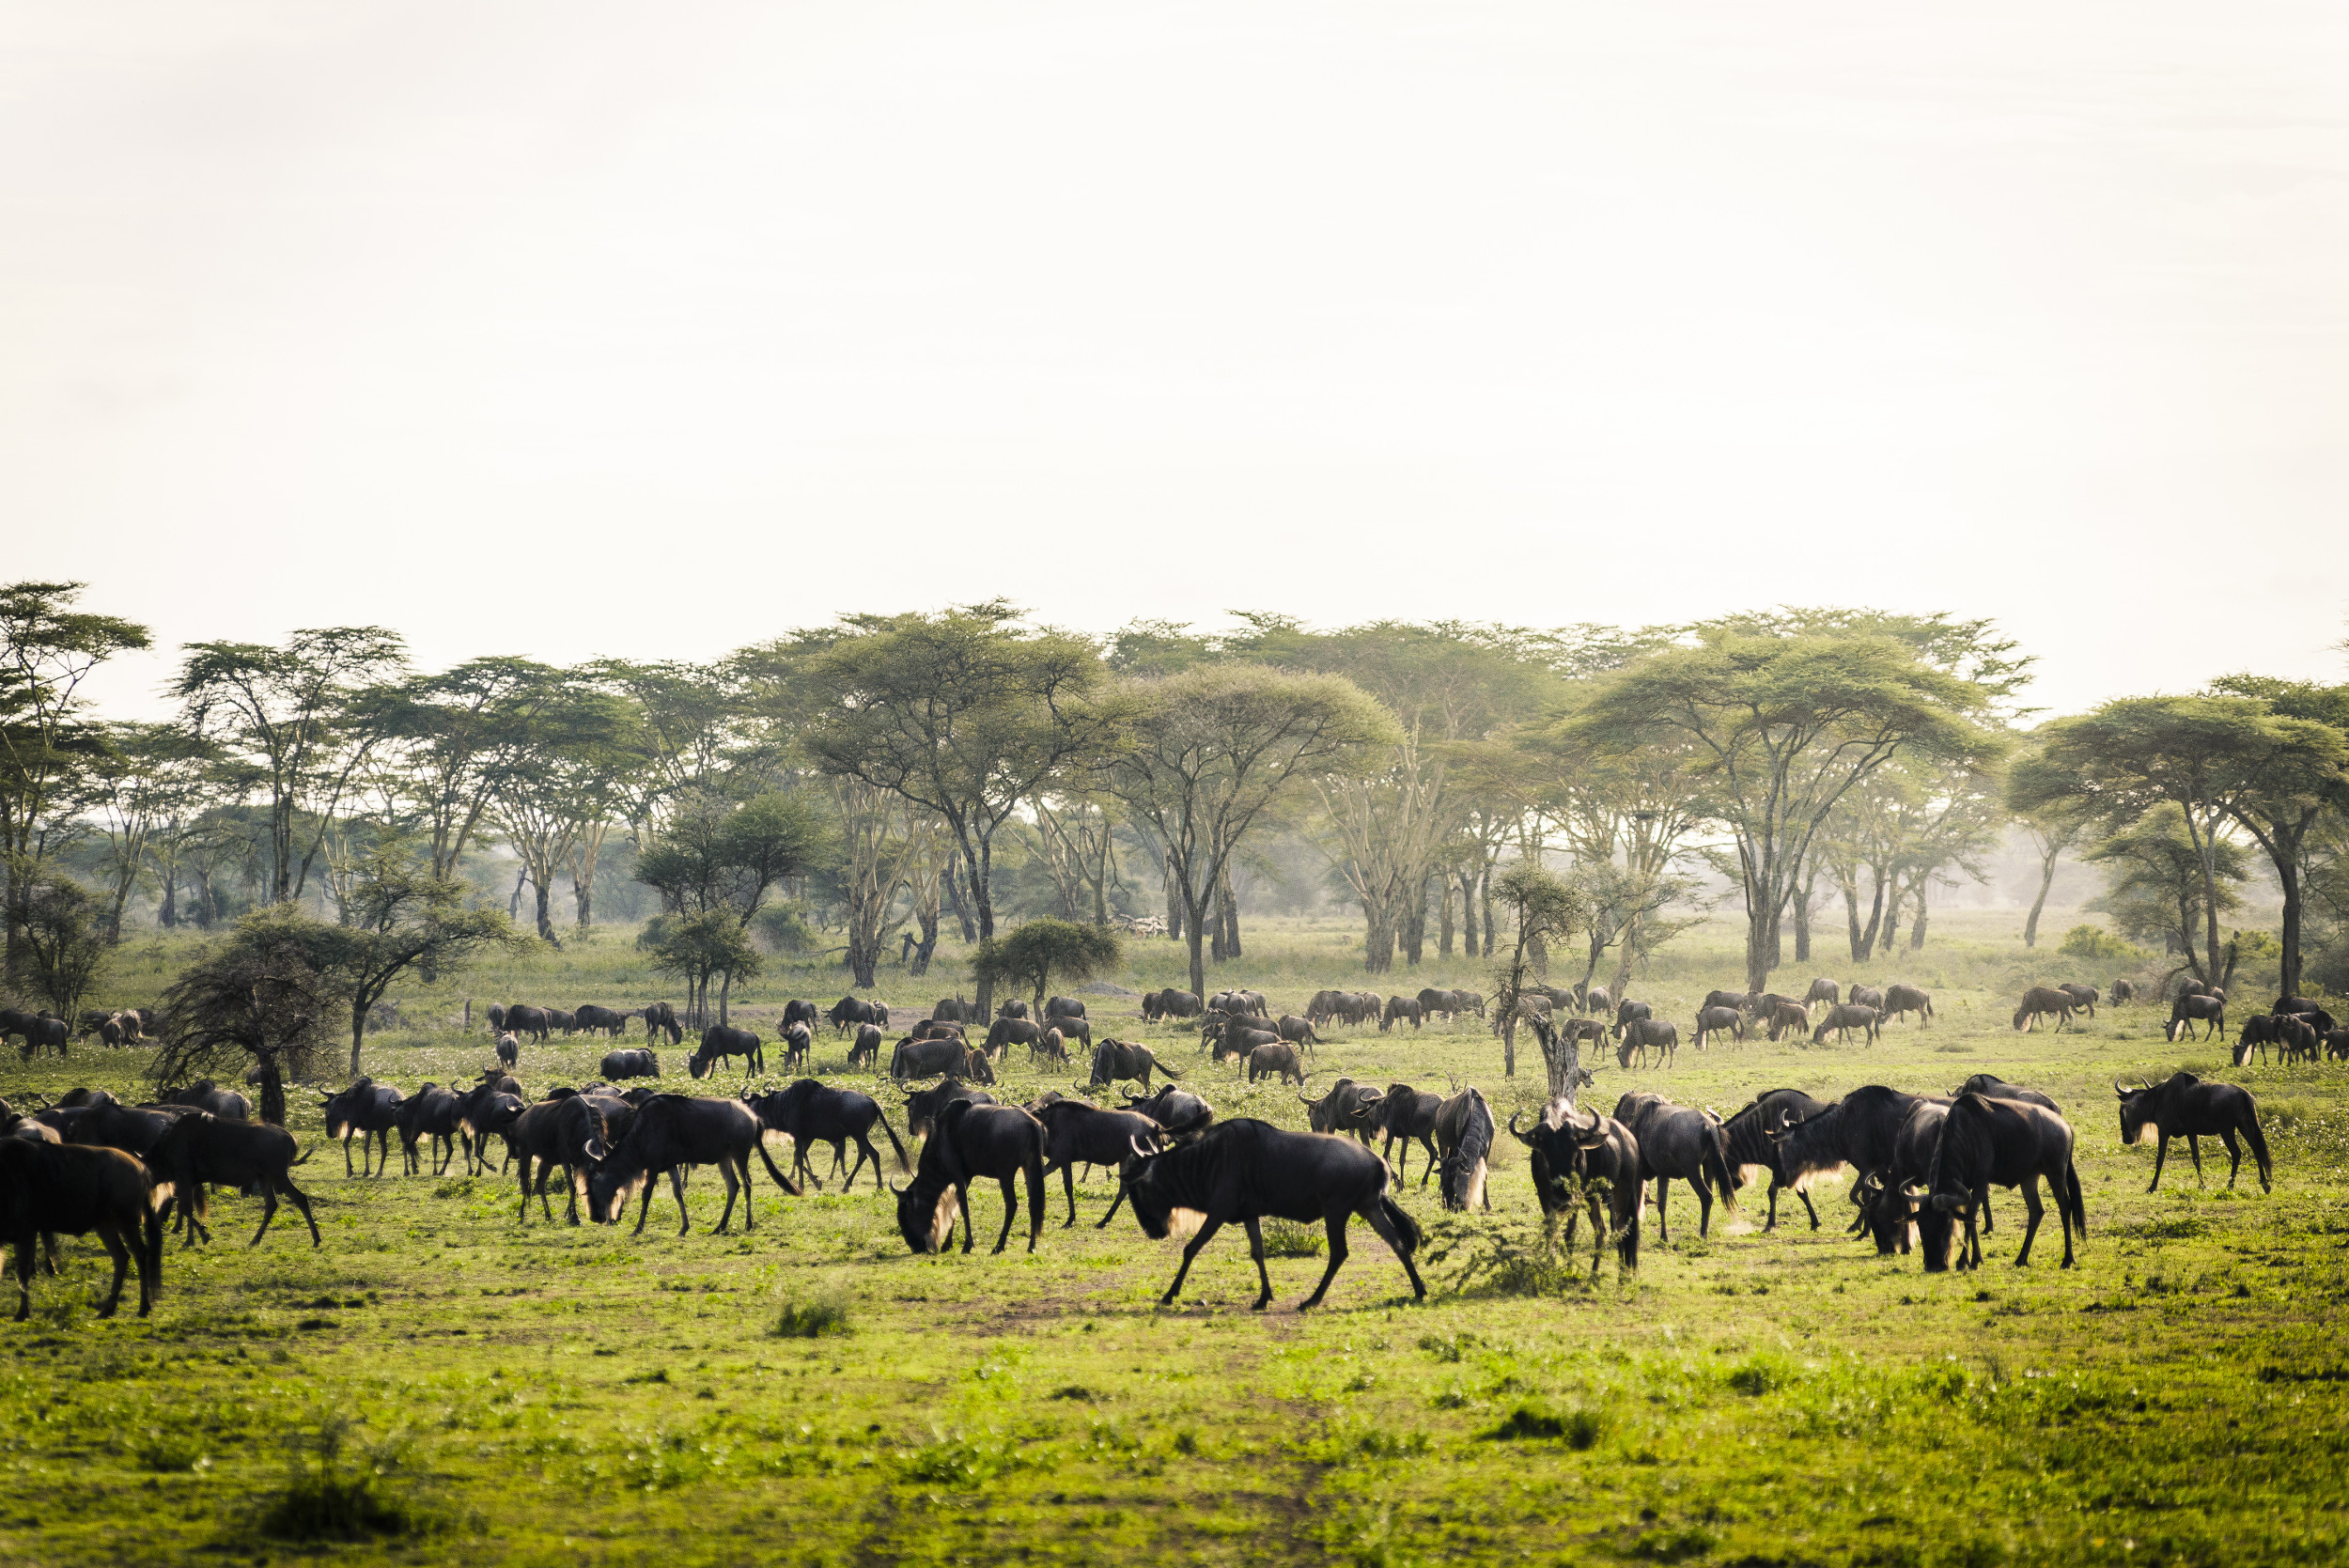 The experience sees guests tracking wildebeest and zebra as they make their annual migration across the Serengeti.